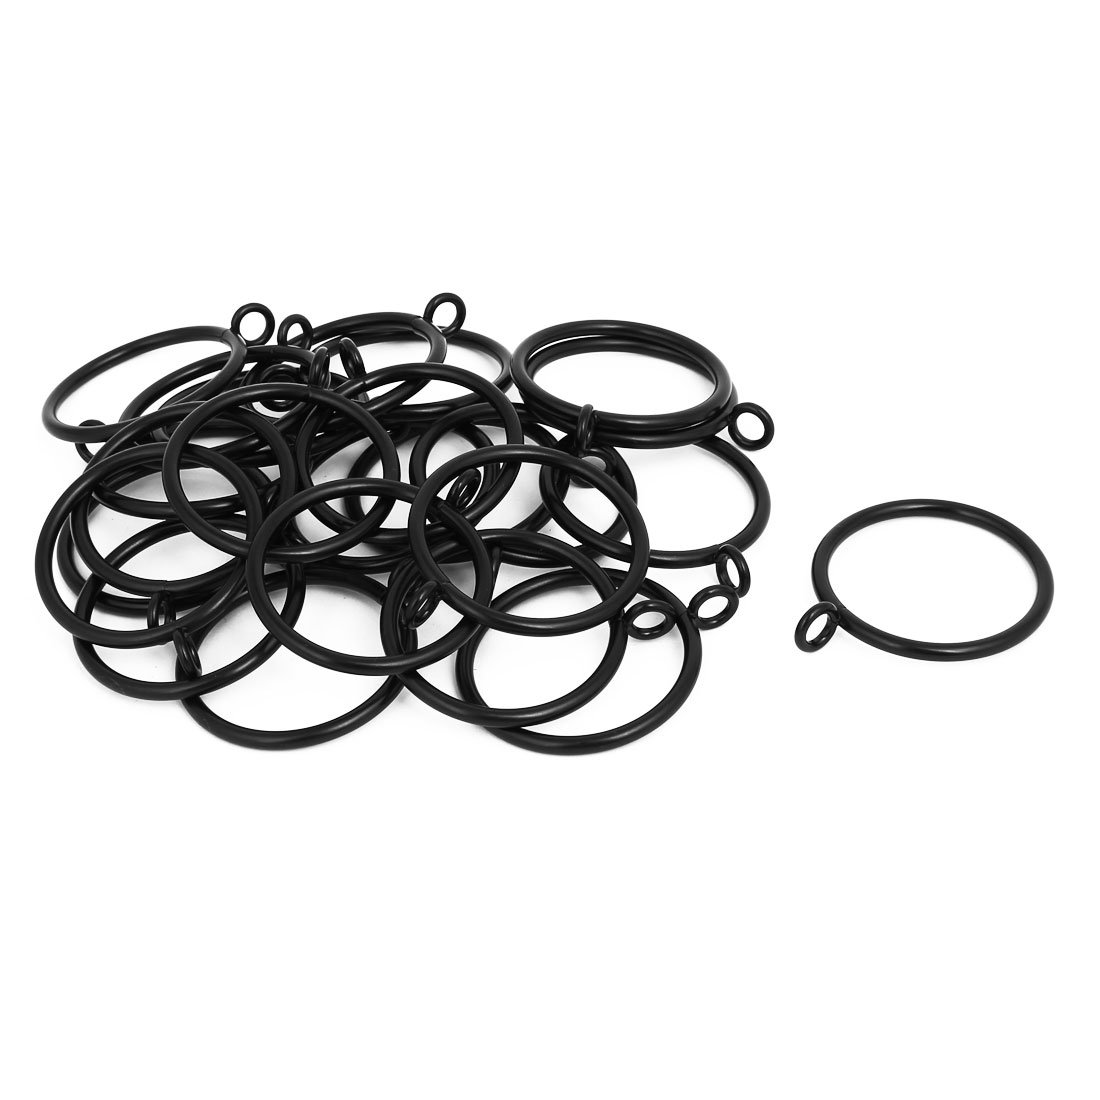 uxcell 45mm Dia 63mm Length Metal Curtain Drape Sliding Eyelet Rings Black 24pcs a16121300ux0022